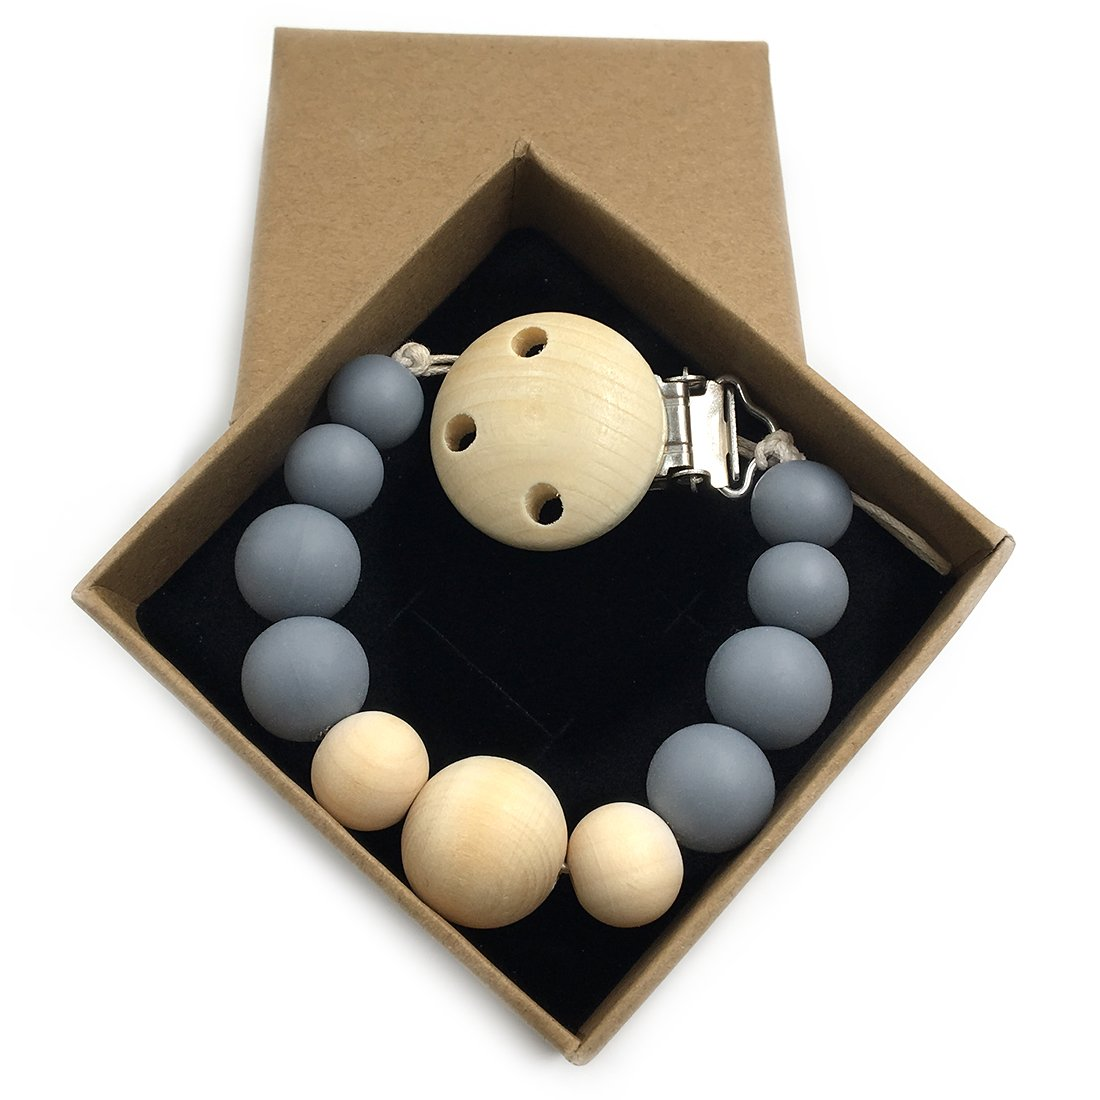 Amyster Natural Silicone//Wooden Beads Wooden Pacifier Clip Newborn Baby Soother Chew Pacifier Chain DIY Baby Teething Grasping Toy Gray